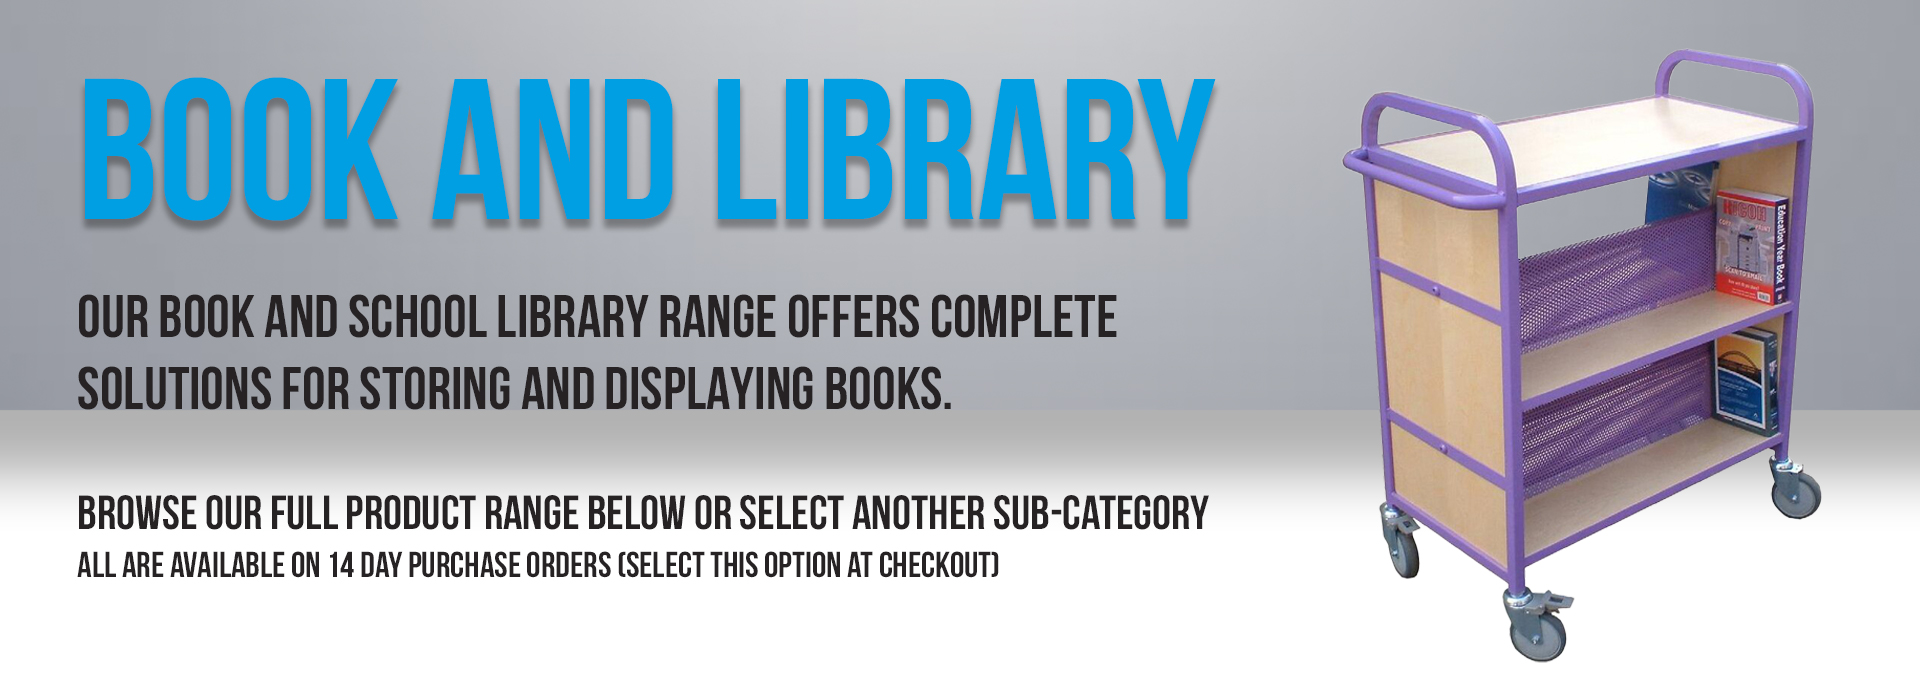 book-and-library-banner-1-.jpg